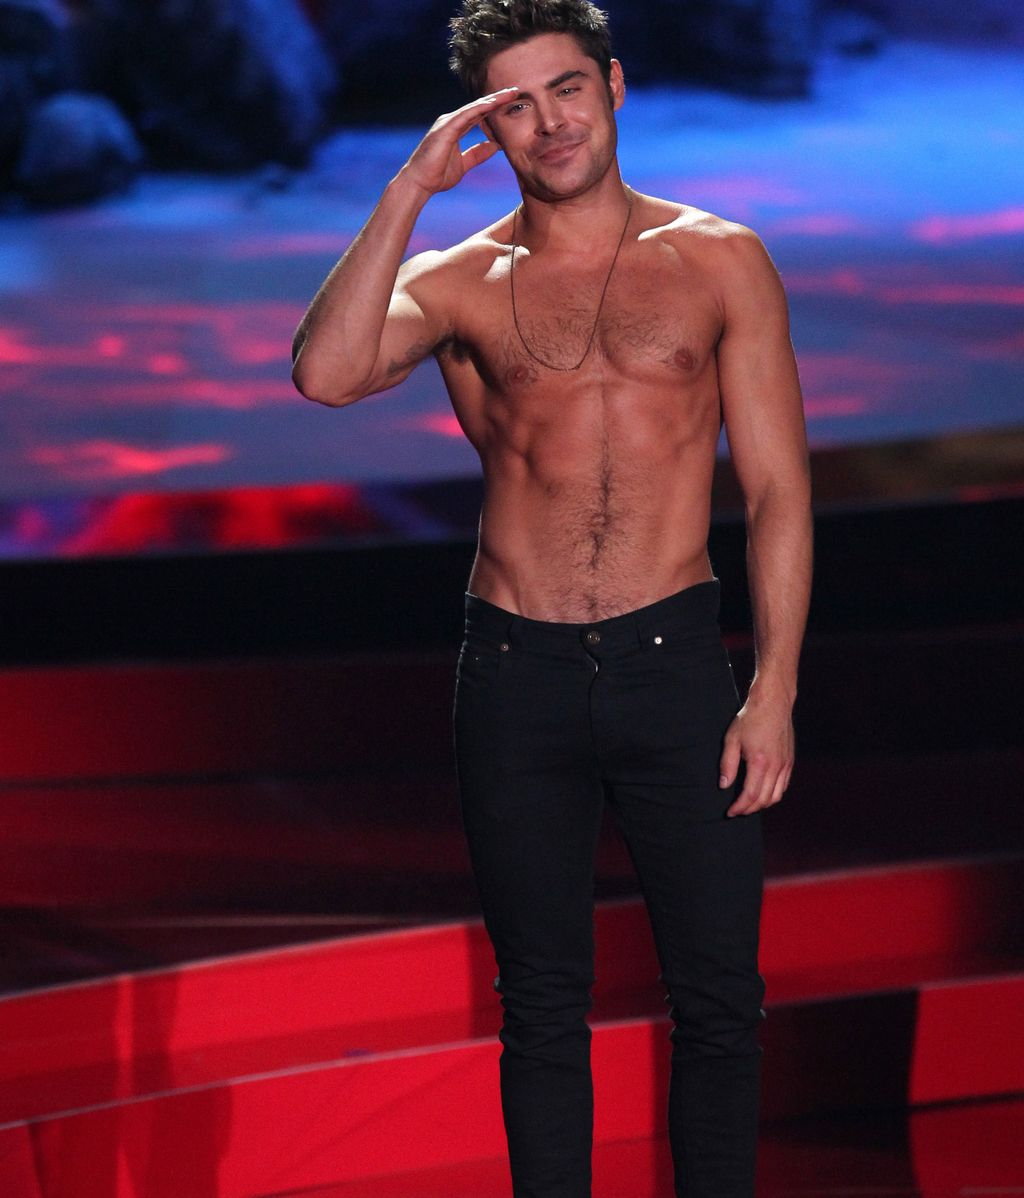 Zac Efron deslumbra en los MTV Movie Award con sus abdominales